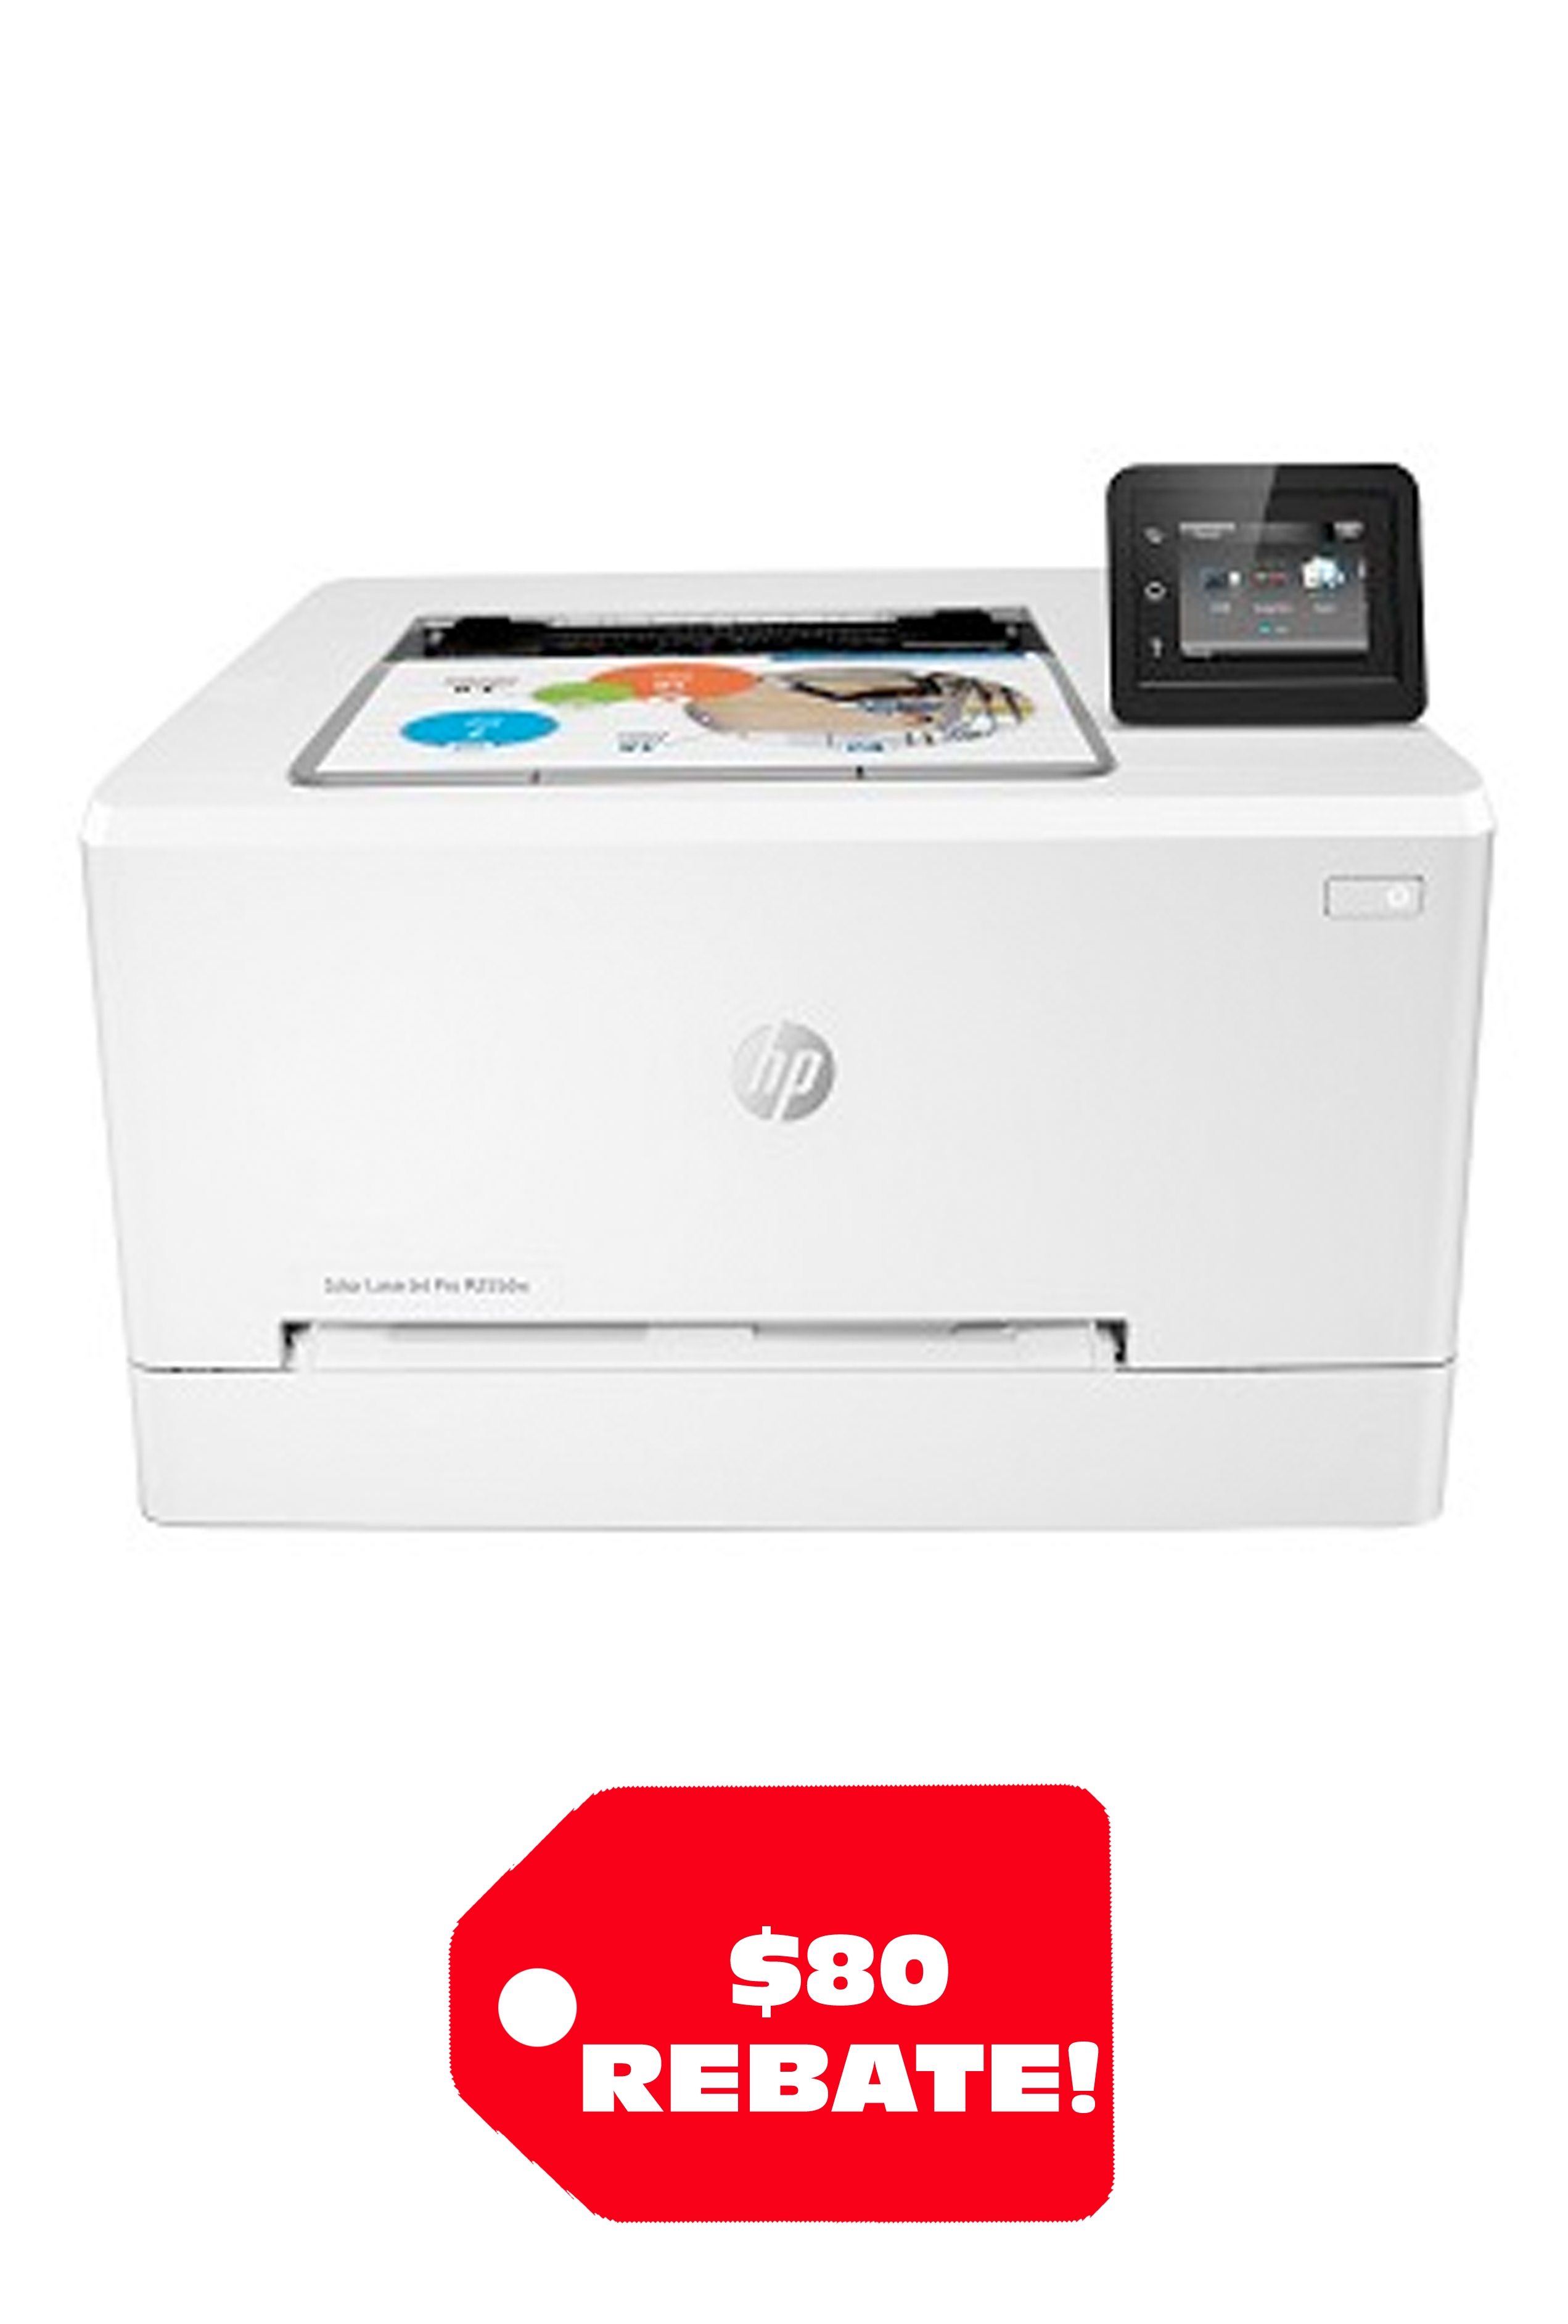 HP Color LaserJet Pro M255dw (22ppm)